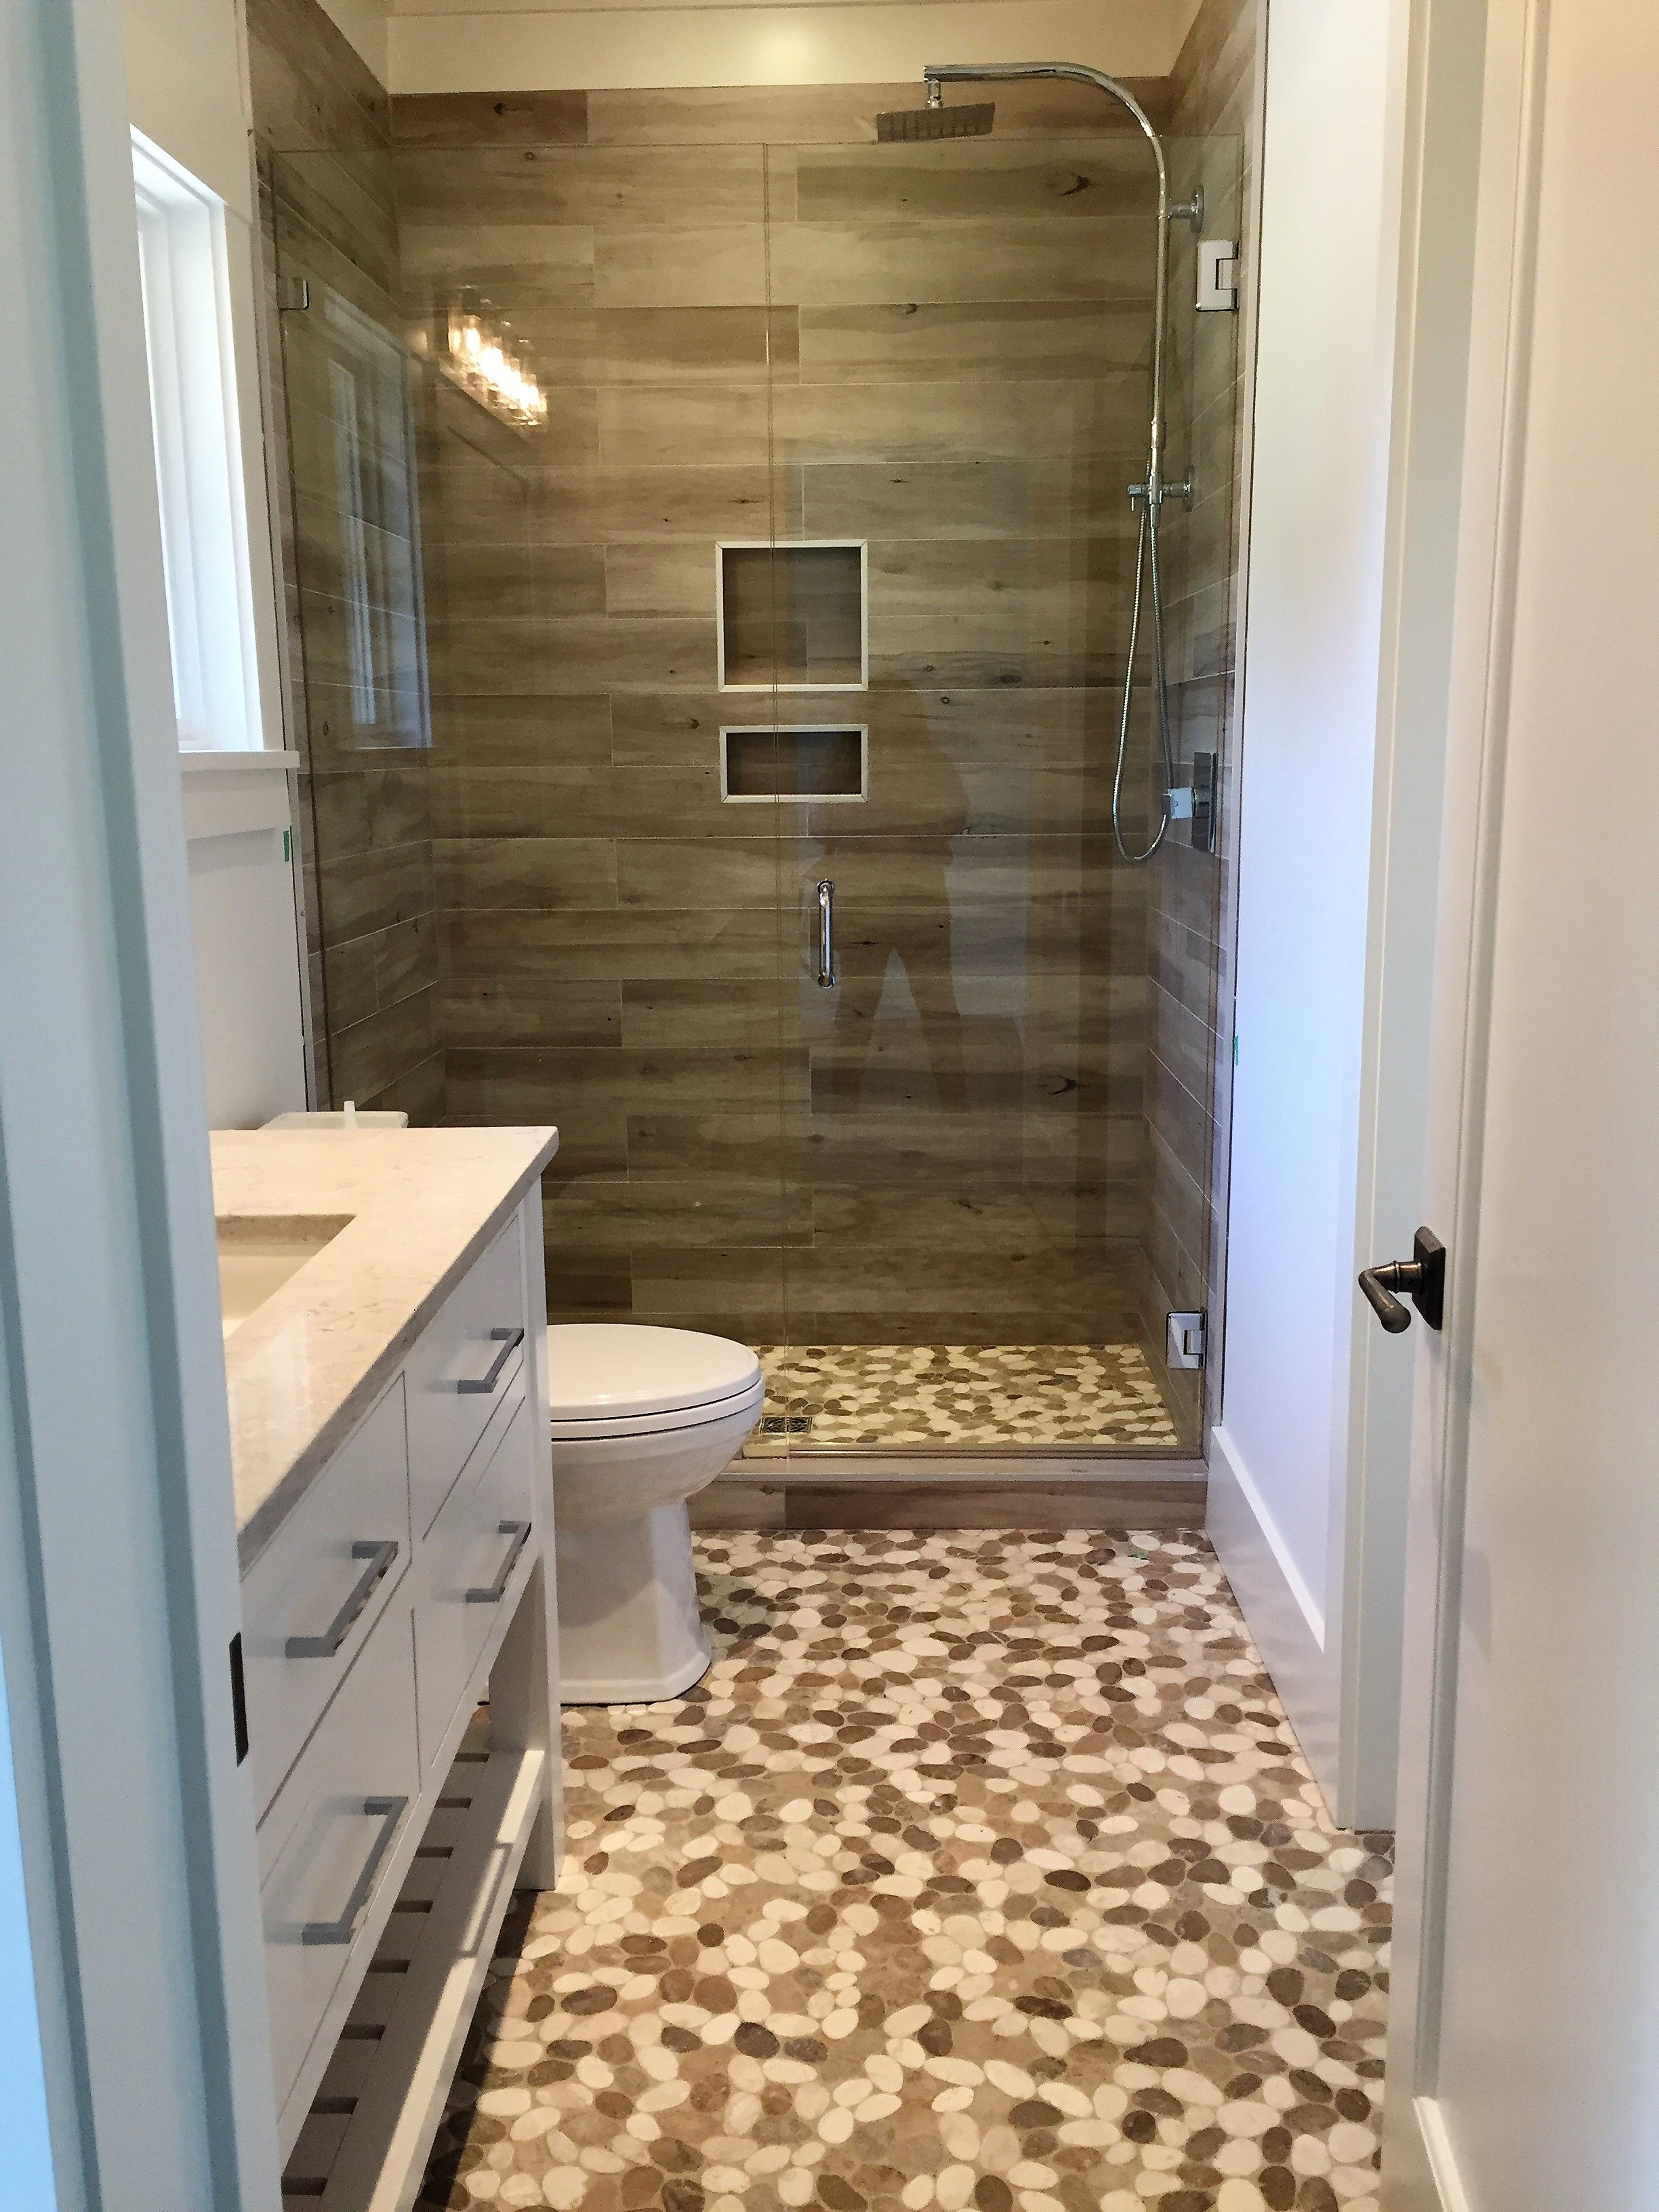 Pebbles On Floor And Wood Look Porcelain Plank Tile On Shower Walls Shower Tile Shower Wall Wood Plank Tile